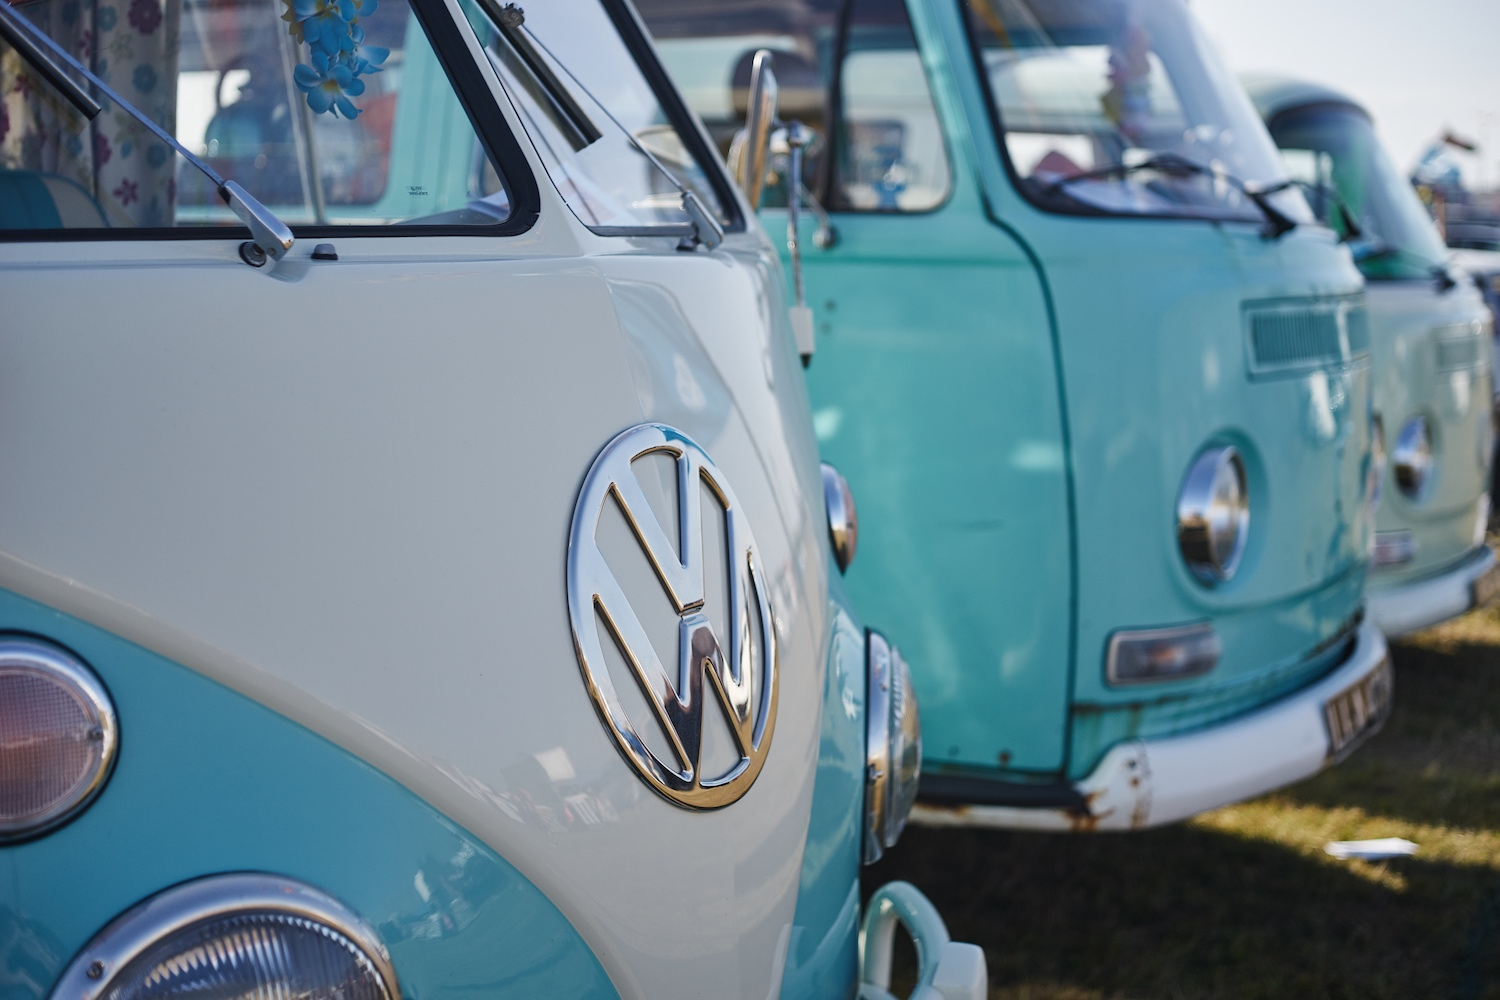 Beach Buggin' event, Southsea, UK - taken with Industar N-61 lens on Sony a7